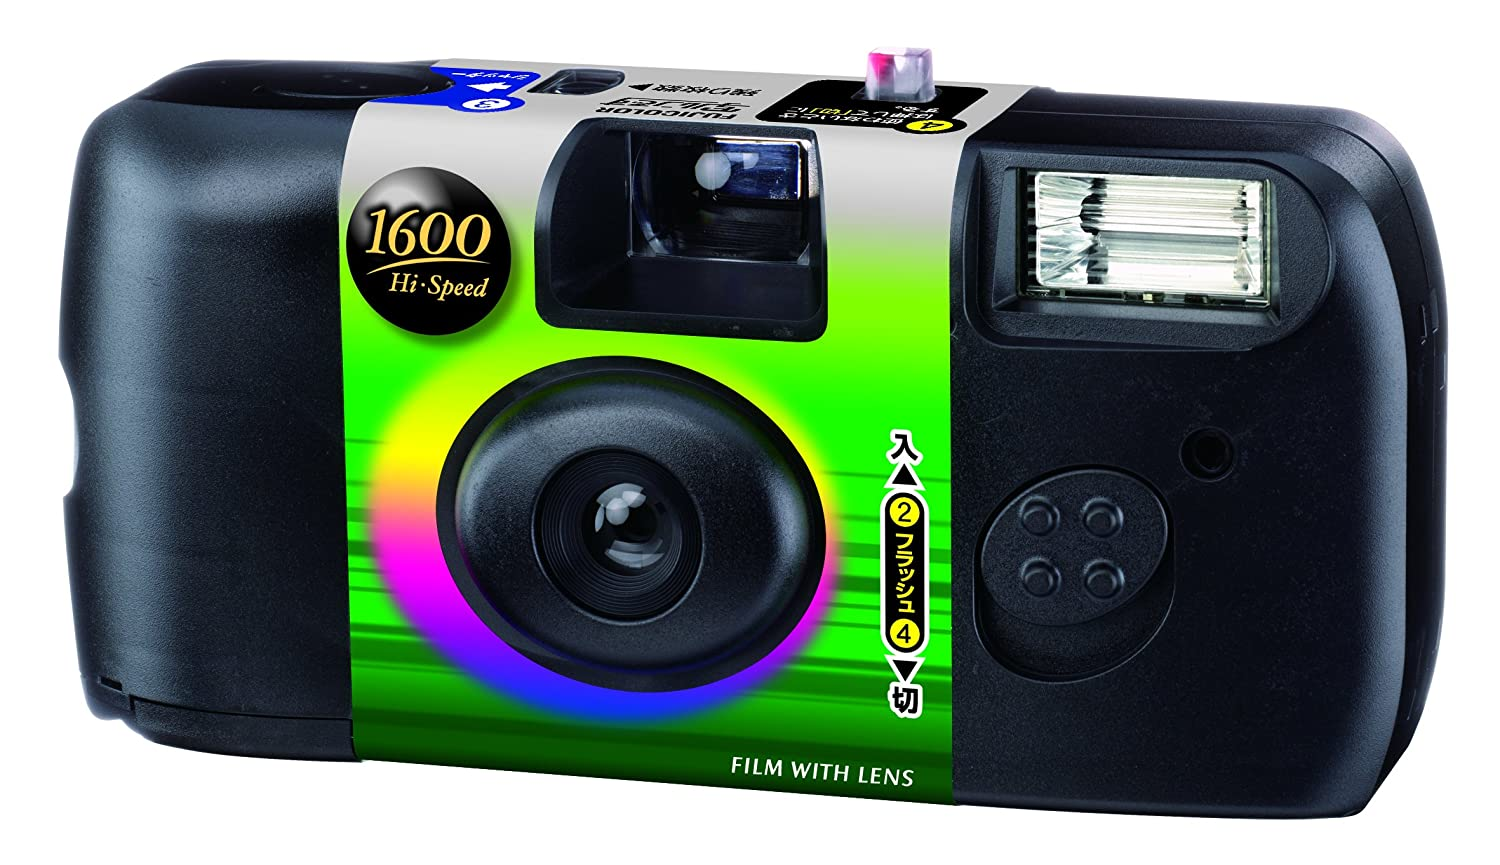 FUJIFILM Disposable Camera Uturundesu 1600 High-speed (High-sensitivity, High-speed) 27 pictures Lf 1600hs-n Fl 27sh 1